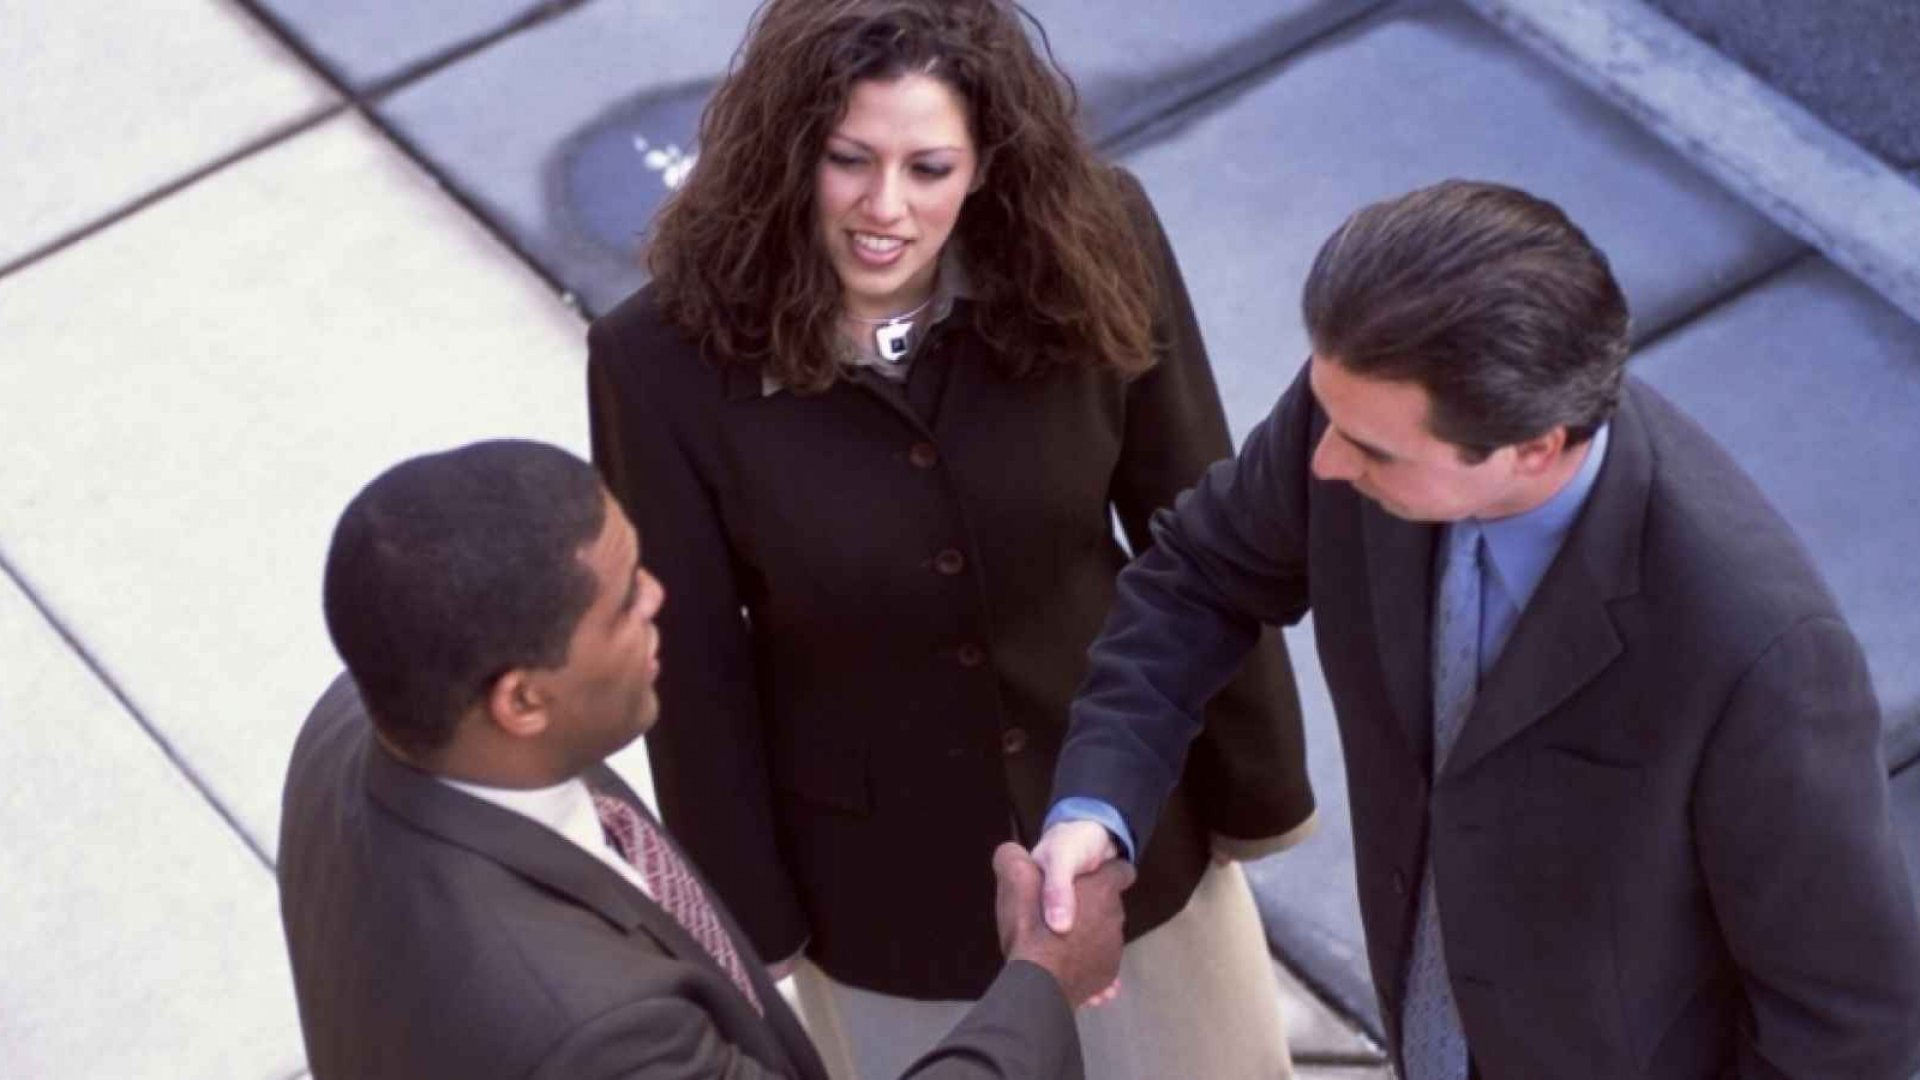 How to Build a Successful Referral Culture